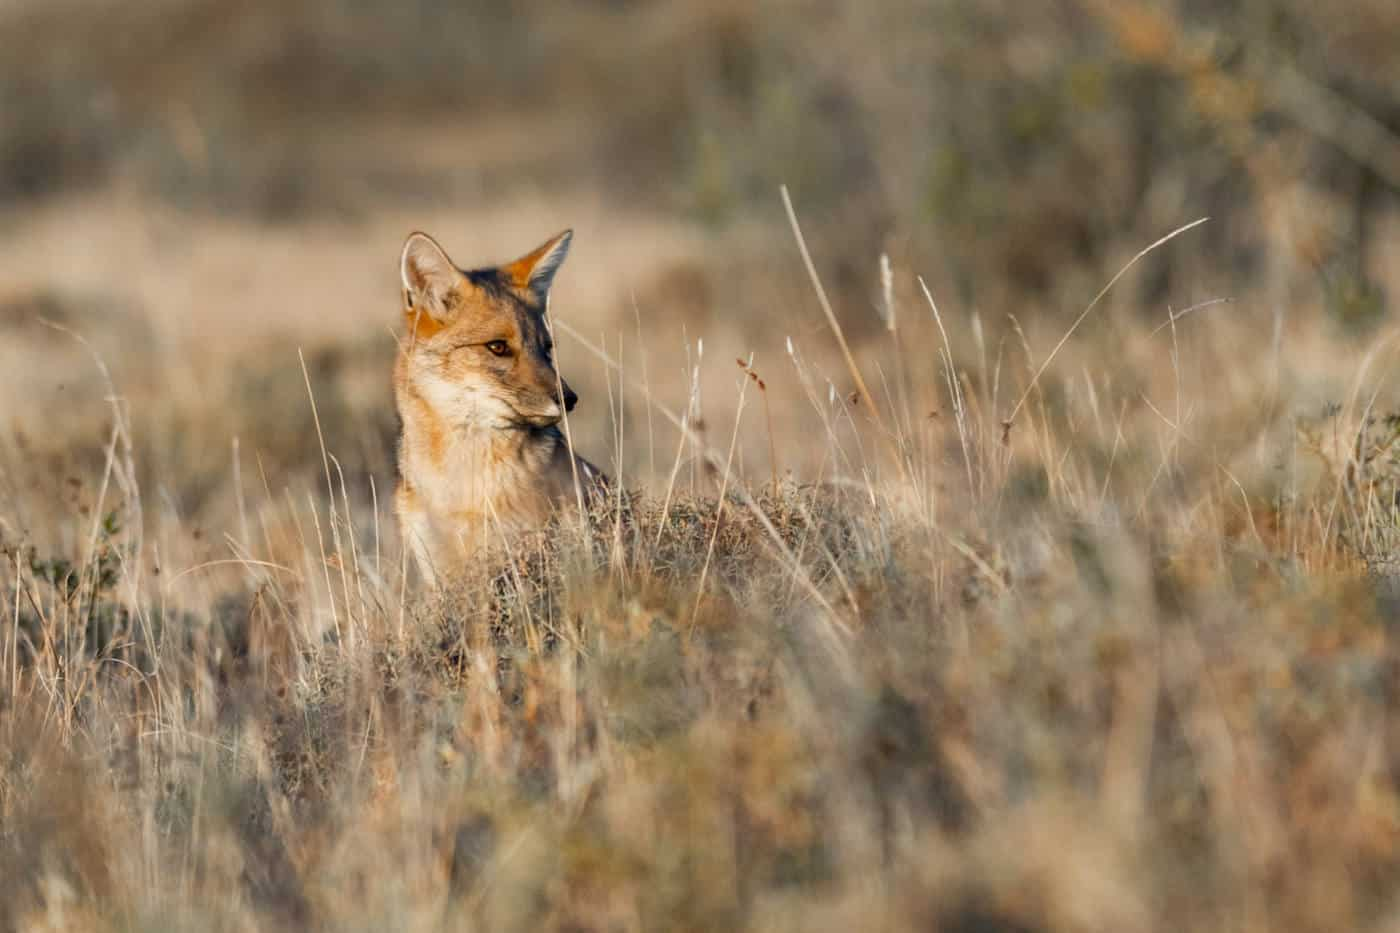 A Patagonian fox in Argentina